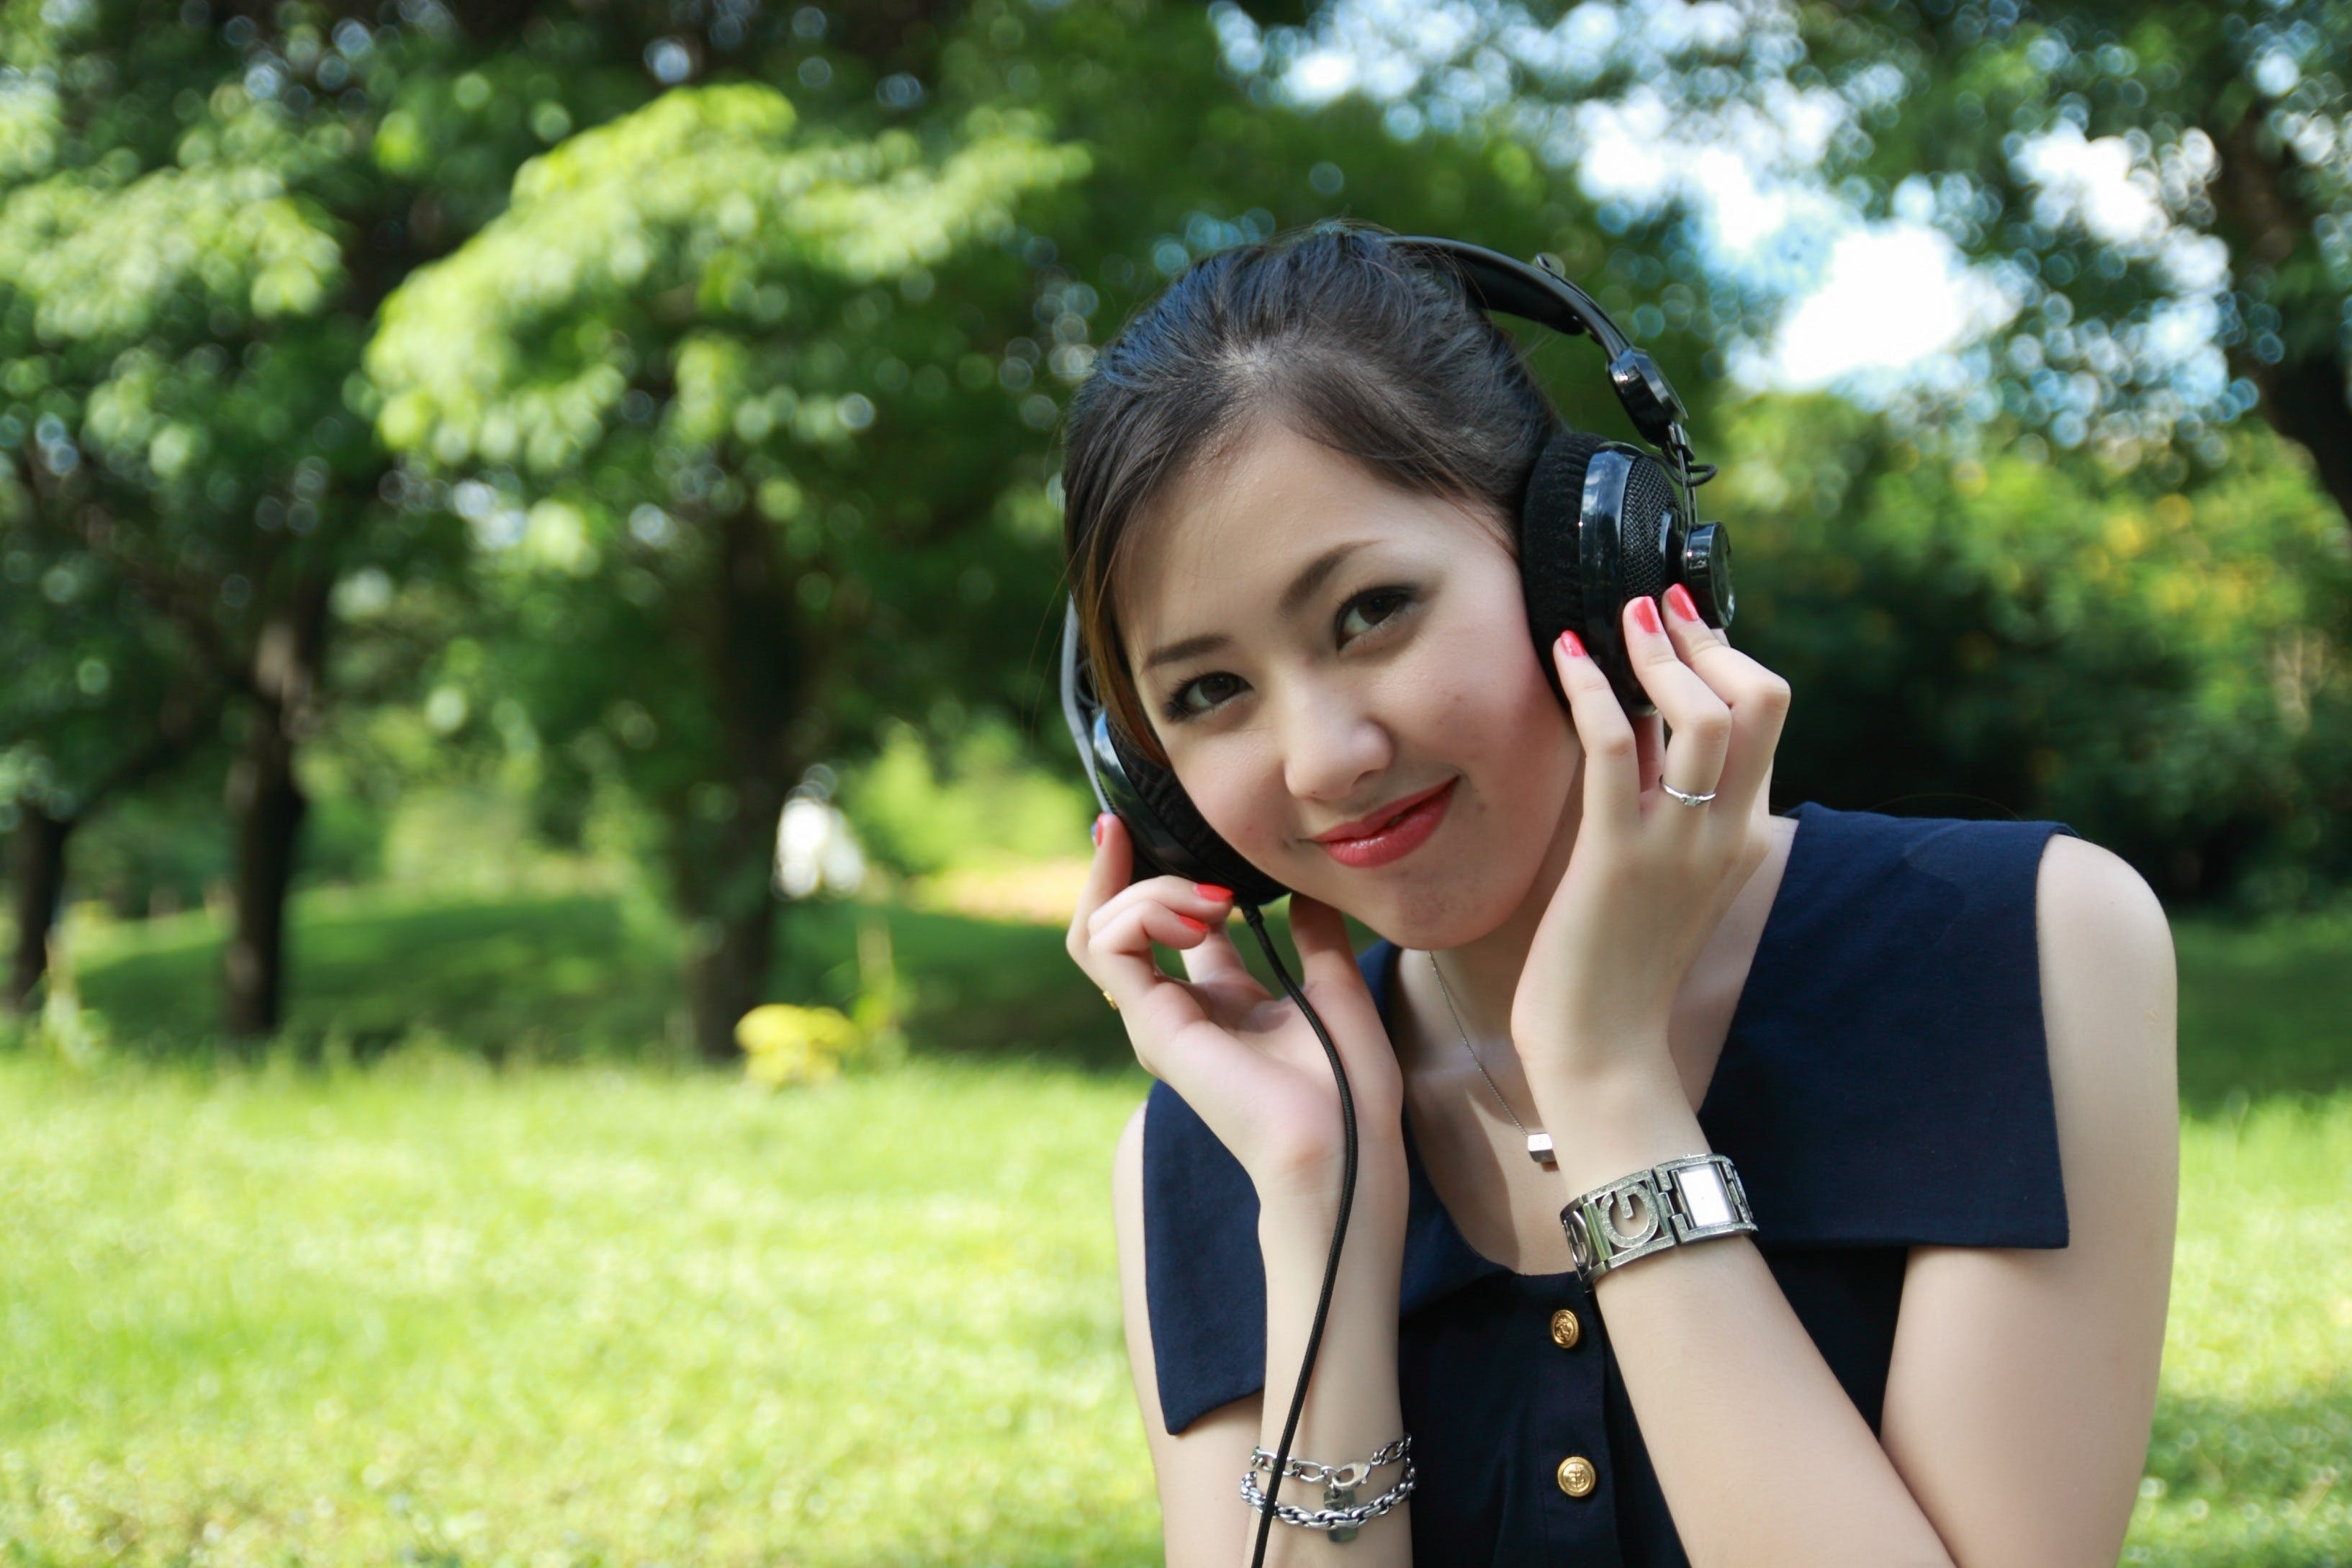 Woman Listens to Earphones in Open Grassfield